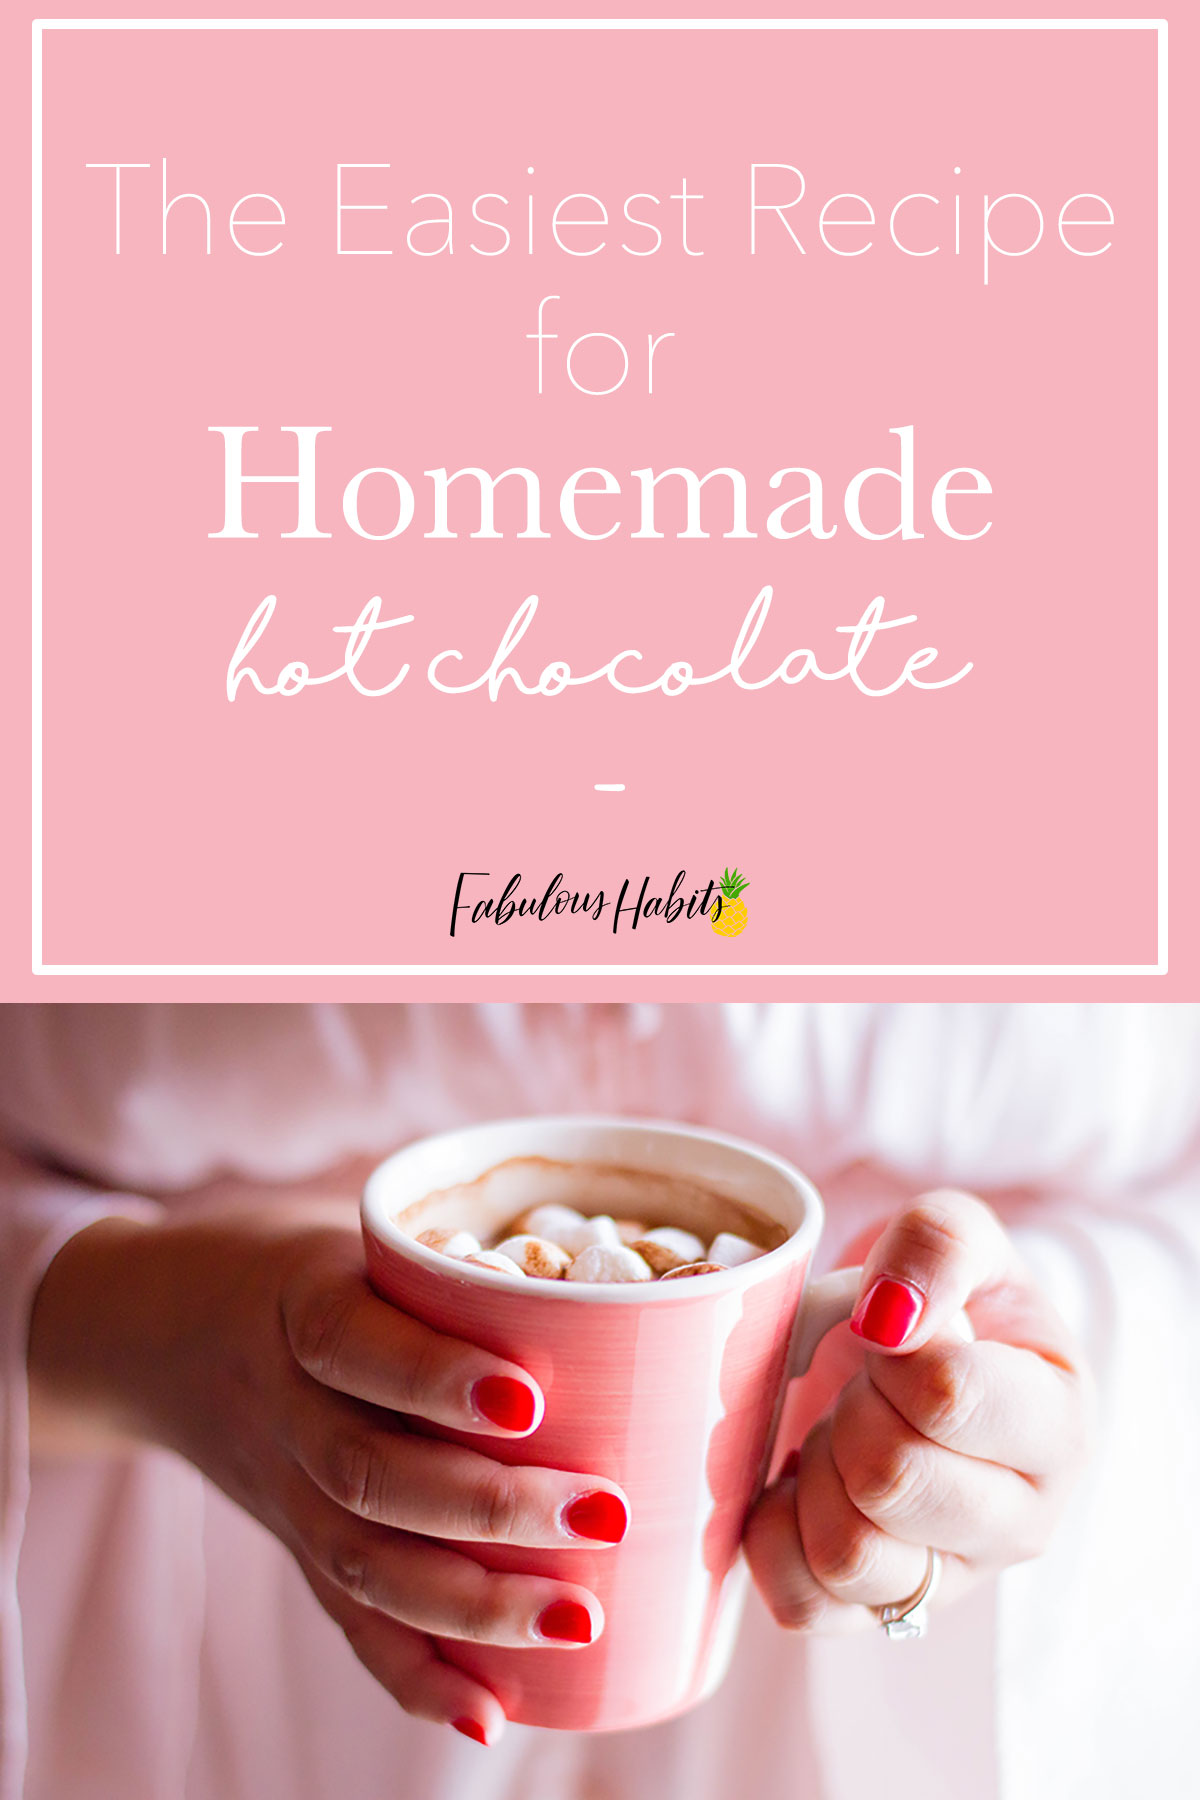 The Hygge Touch: Inspiration for Your Day-to-Day (and Homemade Hot Chocolate)